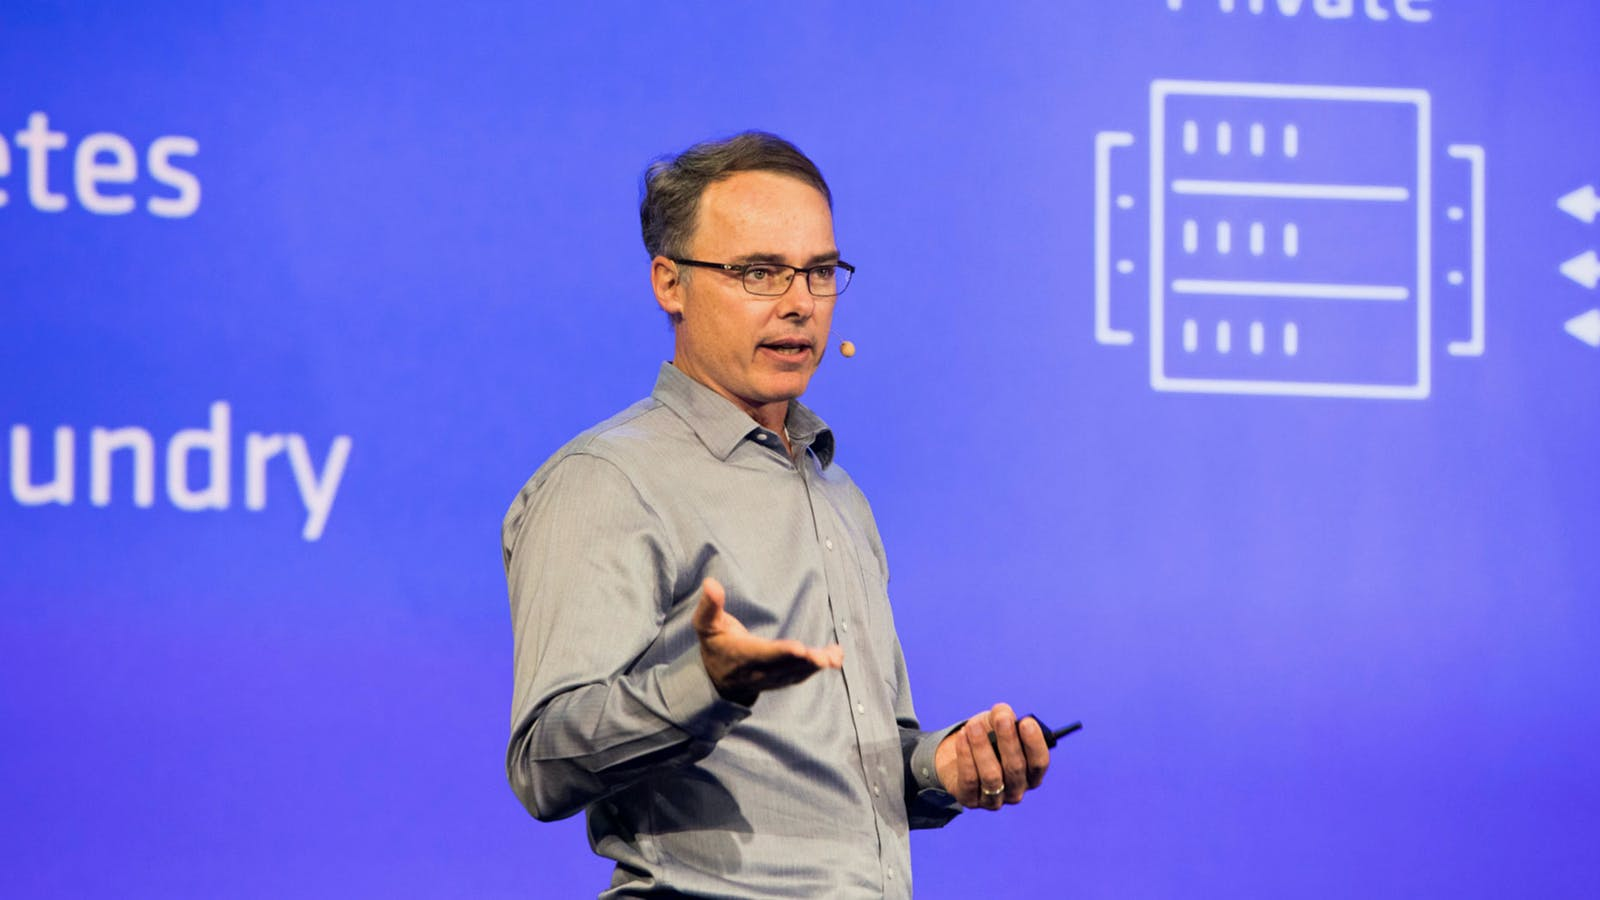 HashiCorp CEO Dave McJannet. Photo by HashiCorp